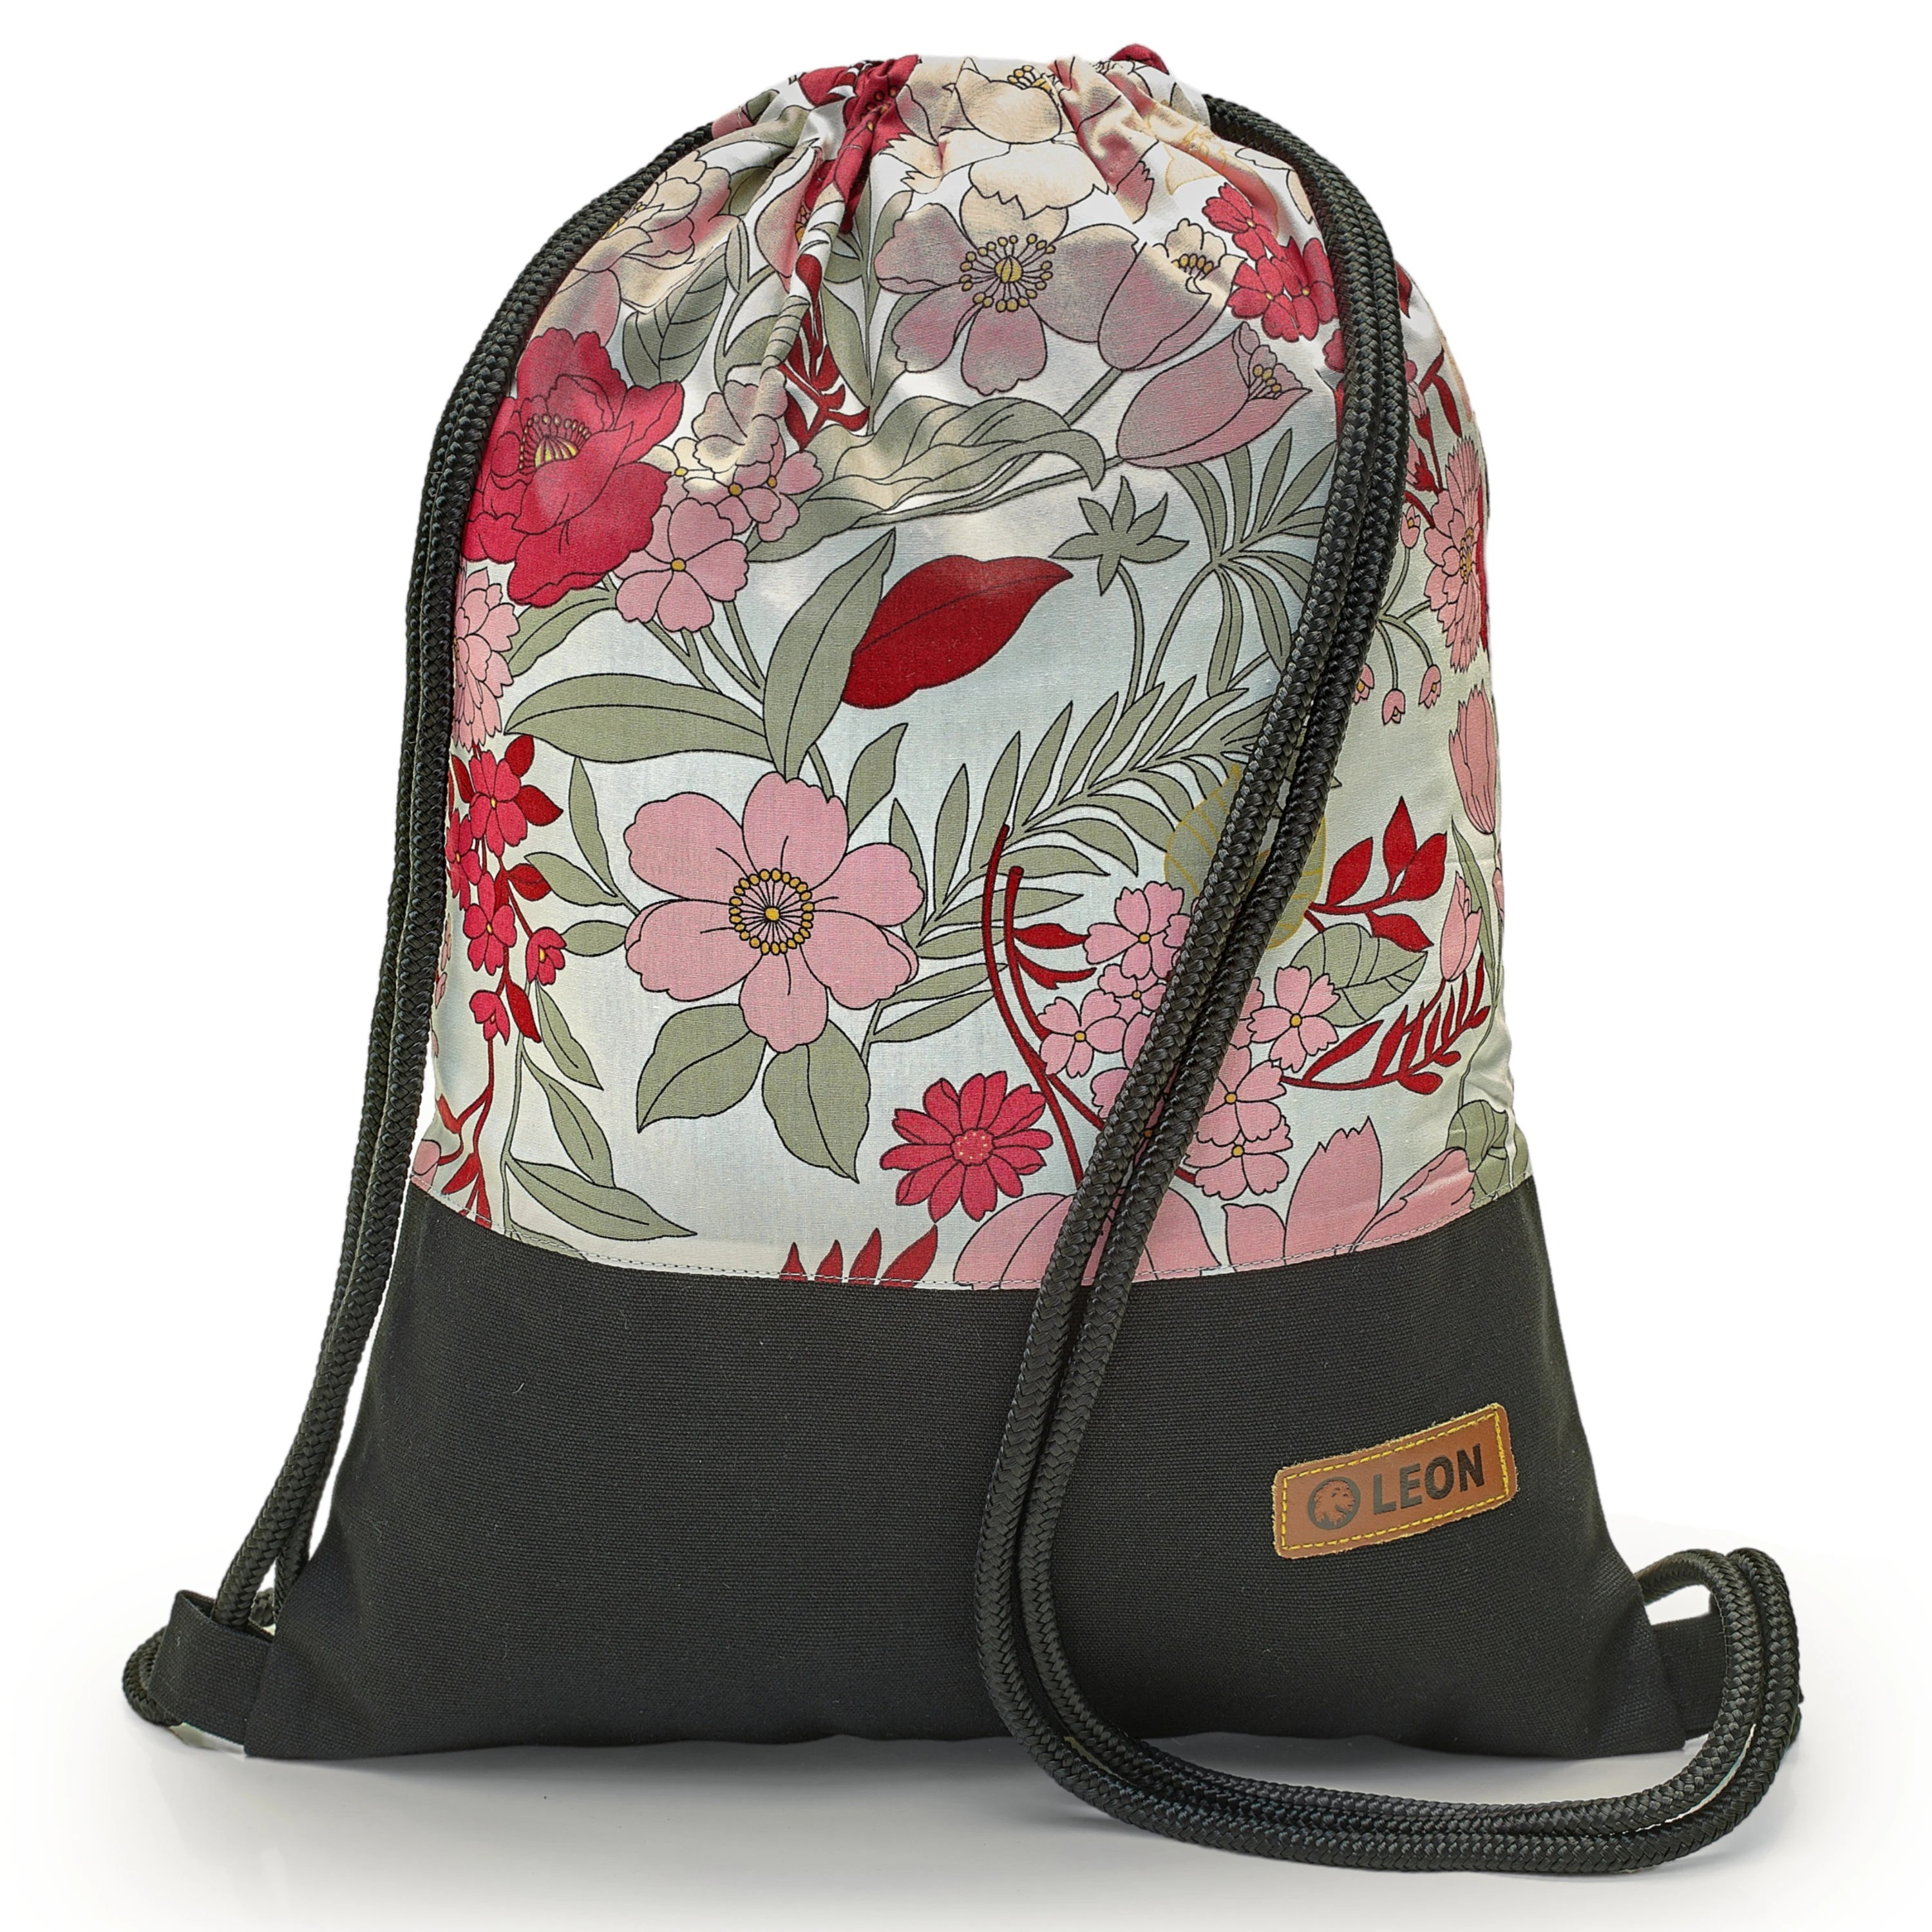 Gs Prüfung Leon By Bers Bag Gym Bag Backpack Sports Bag Cotton Gym Bag Width 34 Cm Height 45 Cm, Pink Grey Flowers On White, Black. Fabricfloor